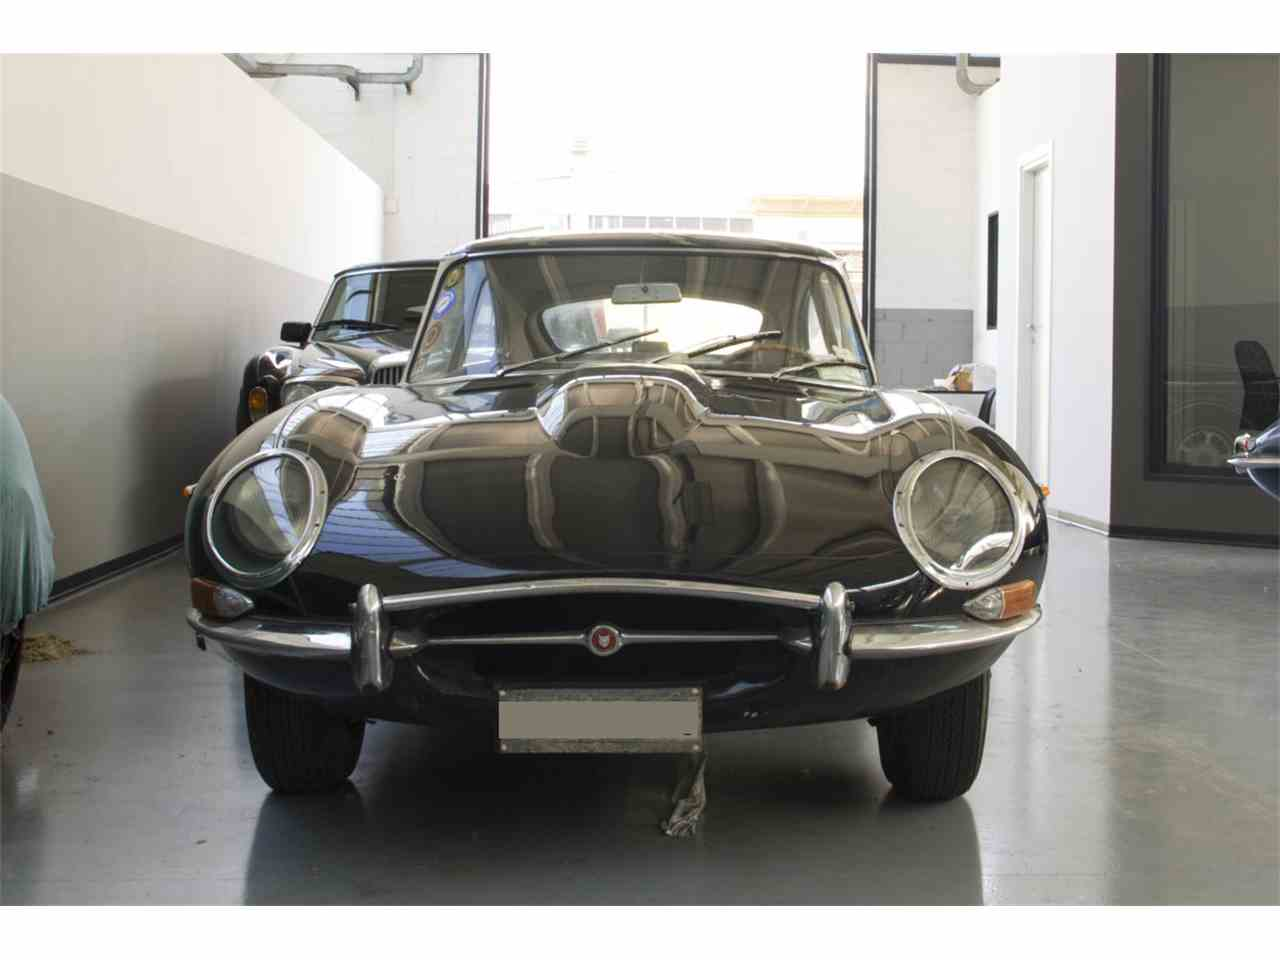 Large Picture of '66 Jaguar E-Type located in MIlano Italy - $89,000.00 Offered by a Private Seller - MWBQ